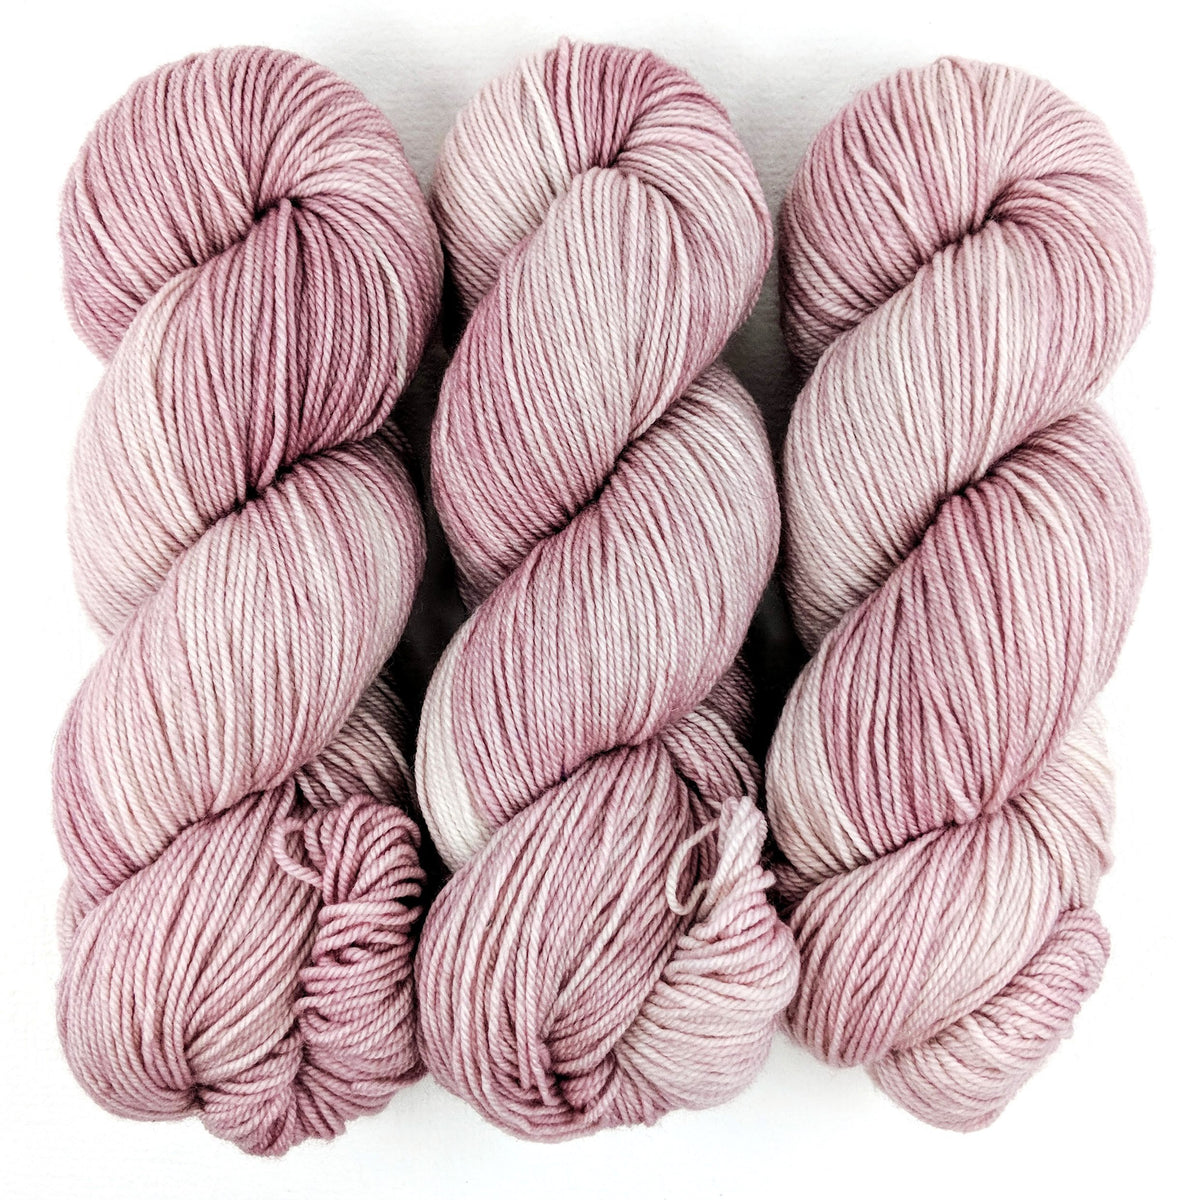 Apple Blossom - Revival Fingering - Dyed Stock